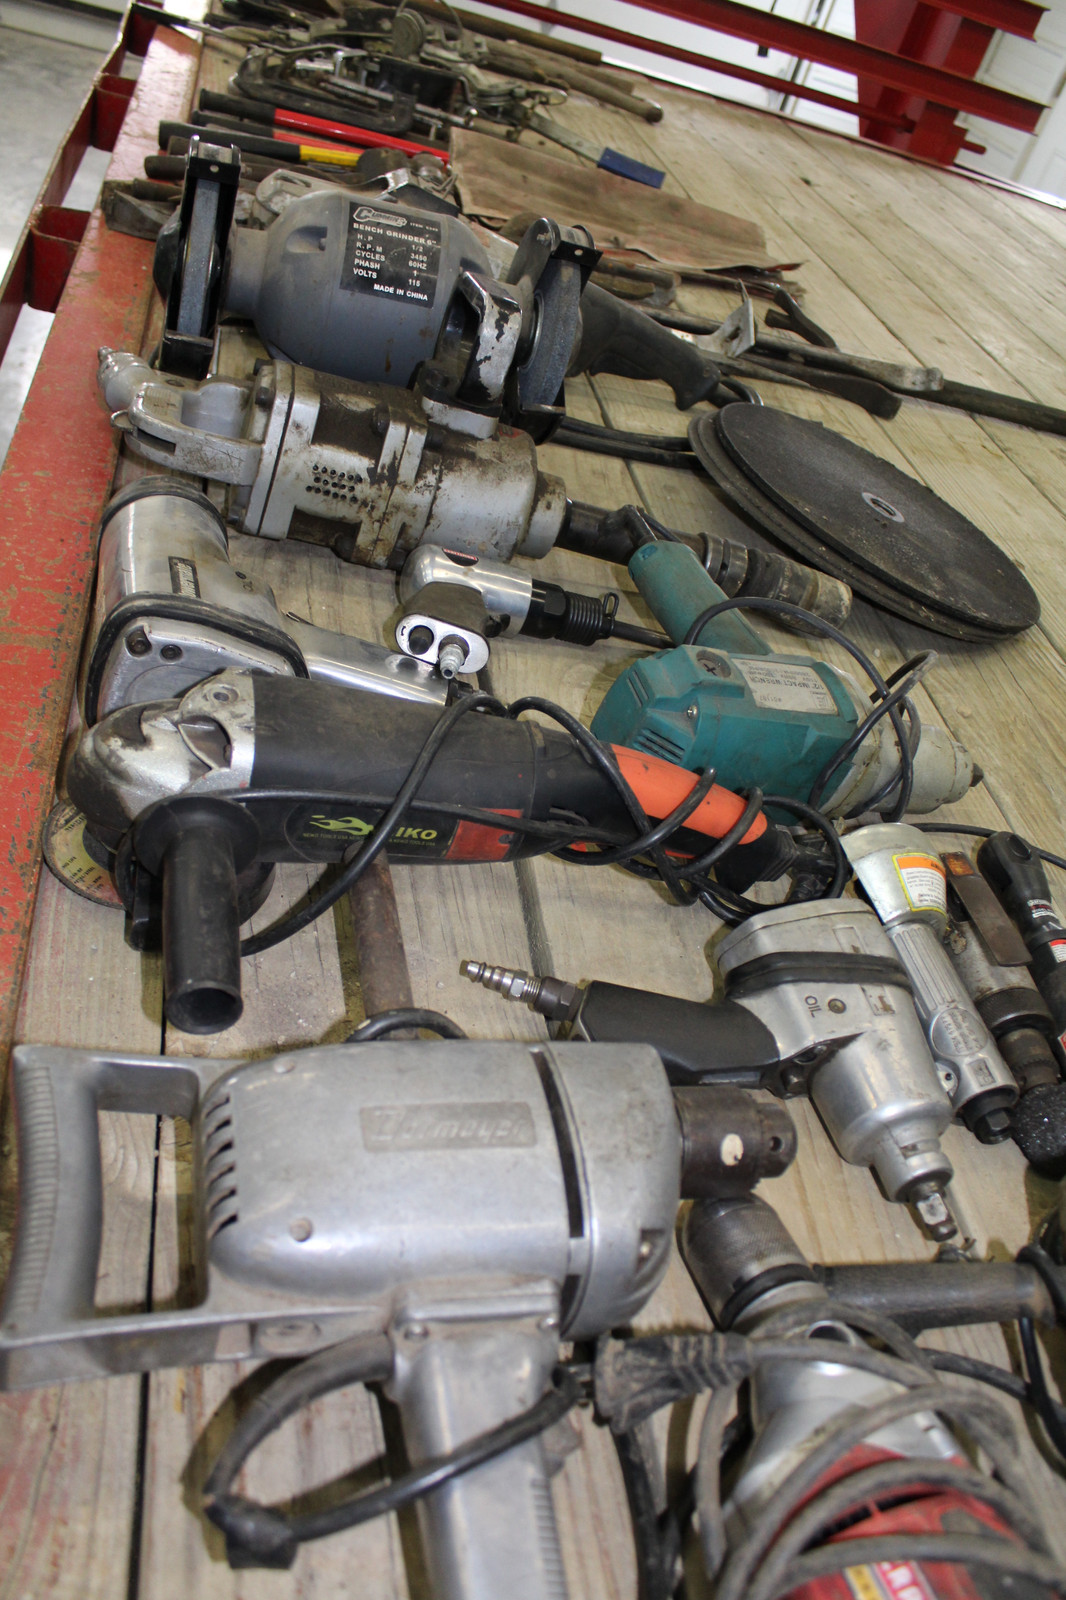 2018 Spring Consignment Auction | Downing, MO